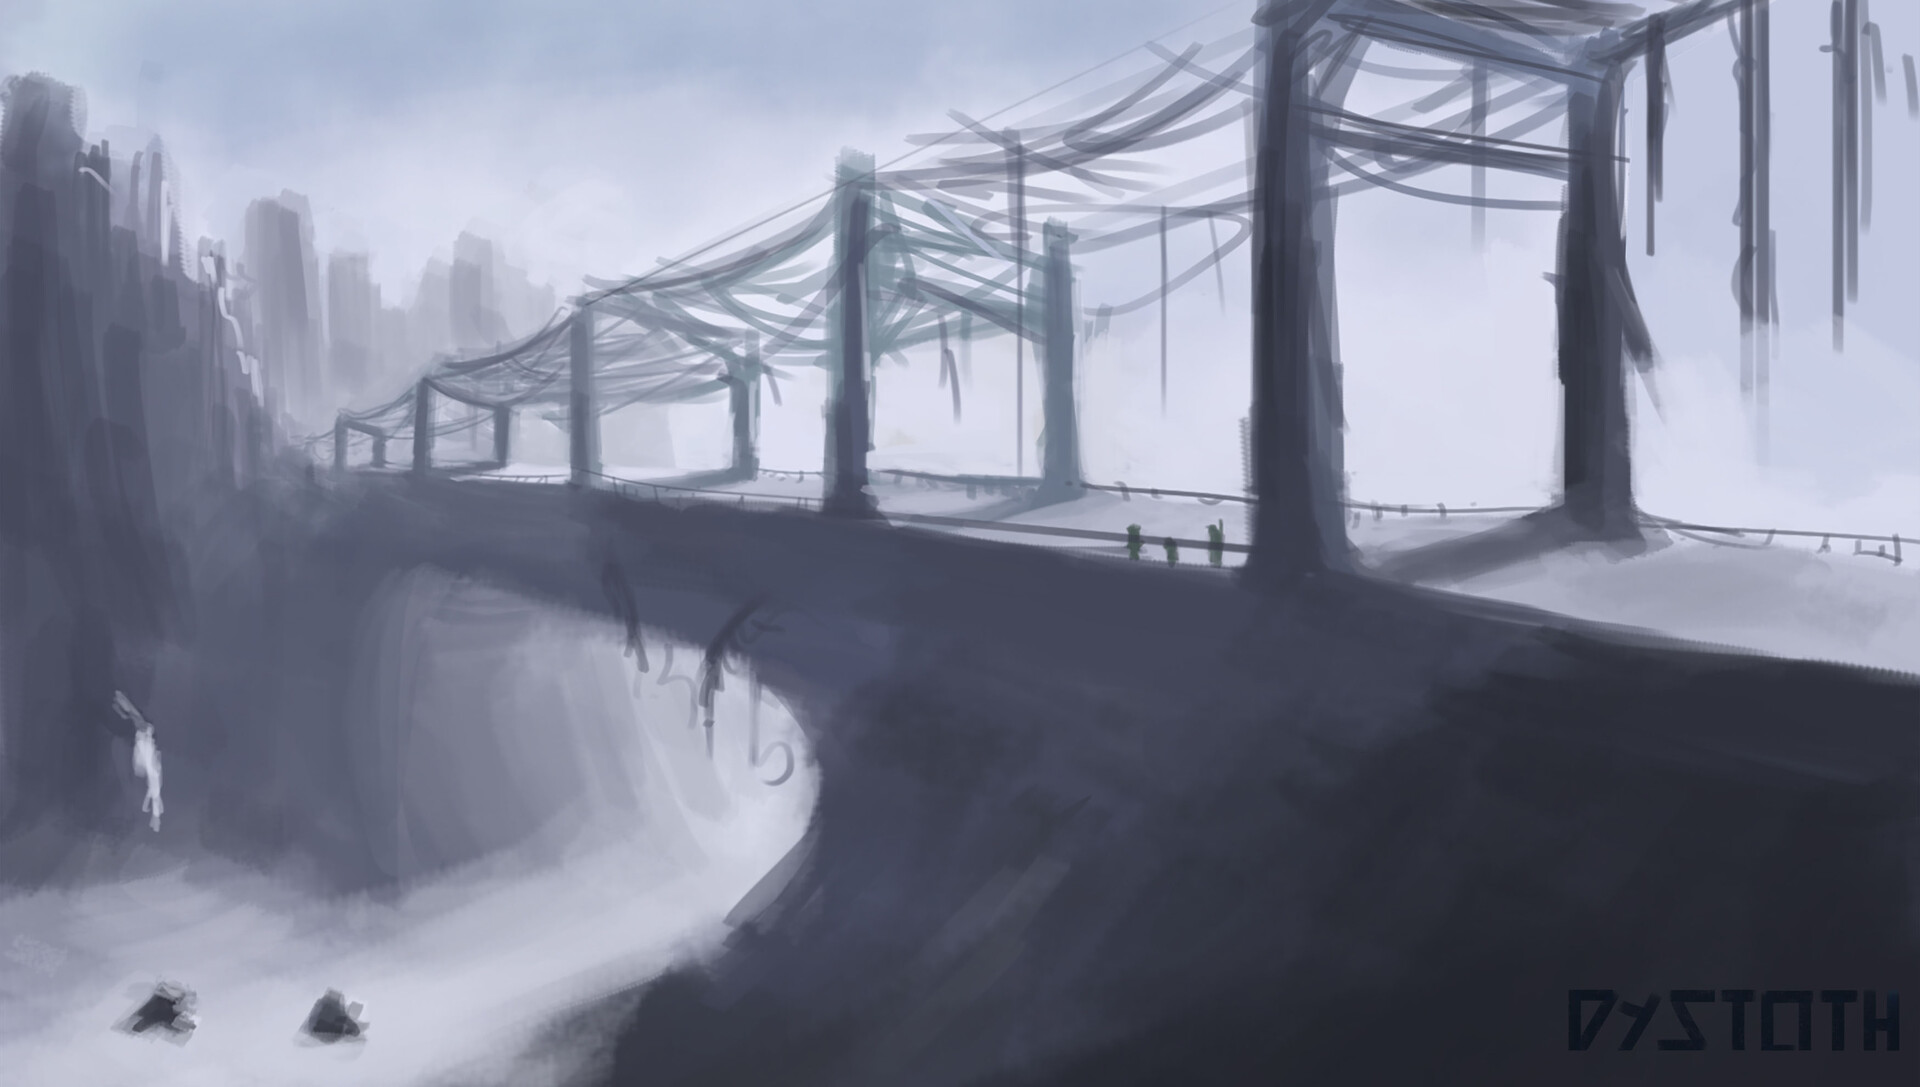 Early sketch of Bridging Cold